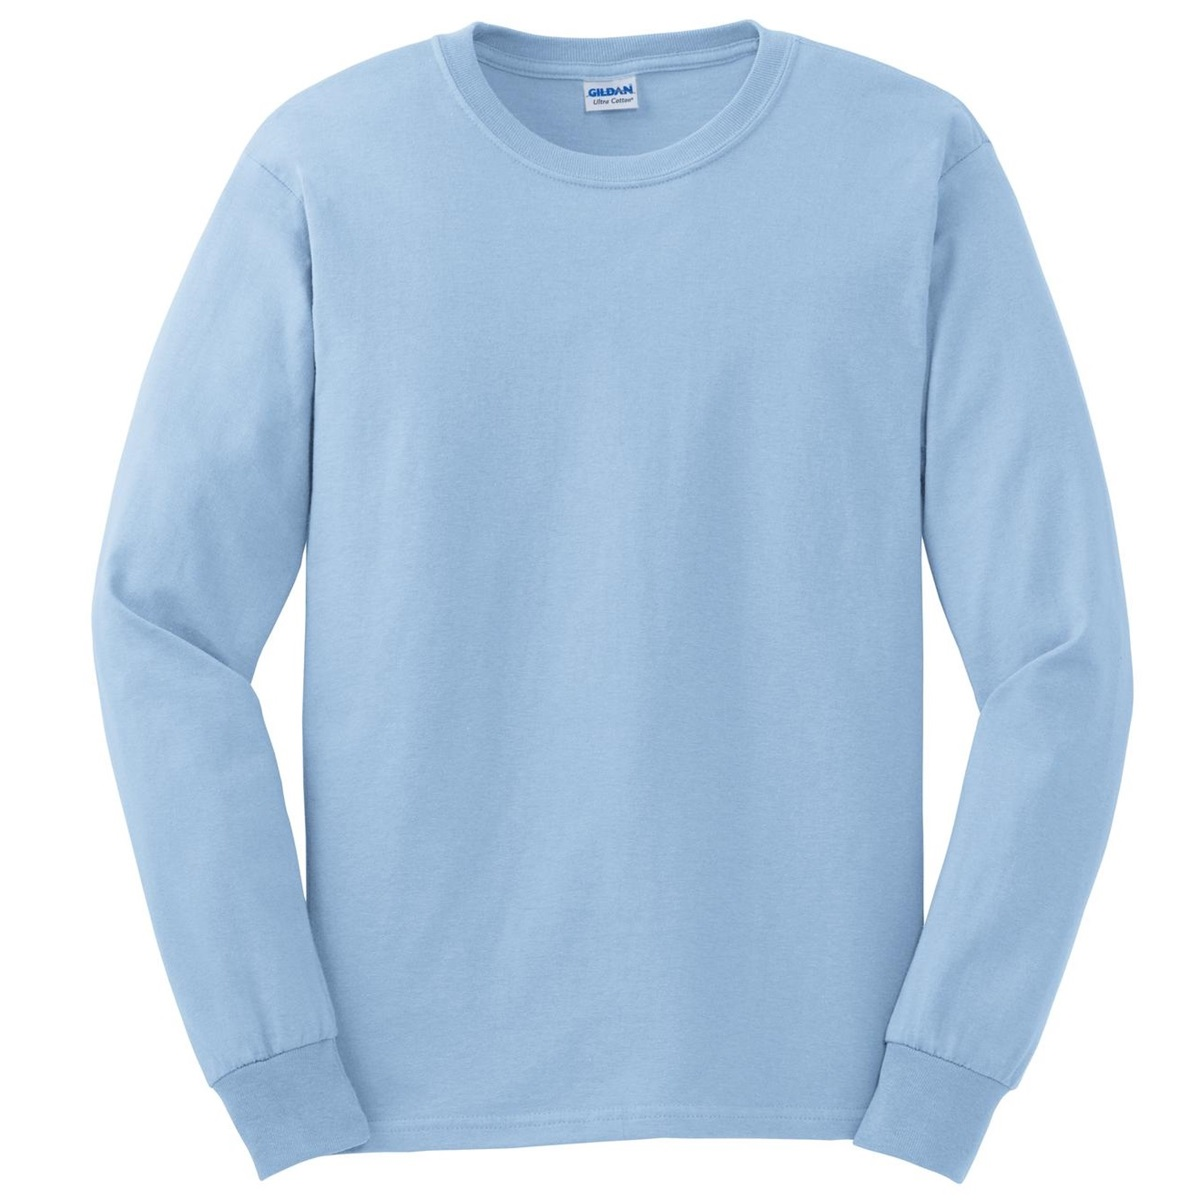 Gildan g2400 ultra cotton long sleeve t shirt light blue for Gildan camouflage t shirts